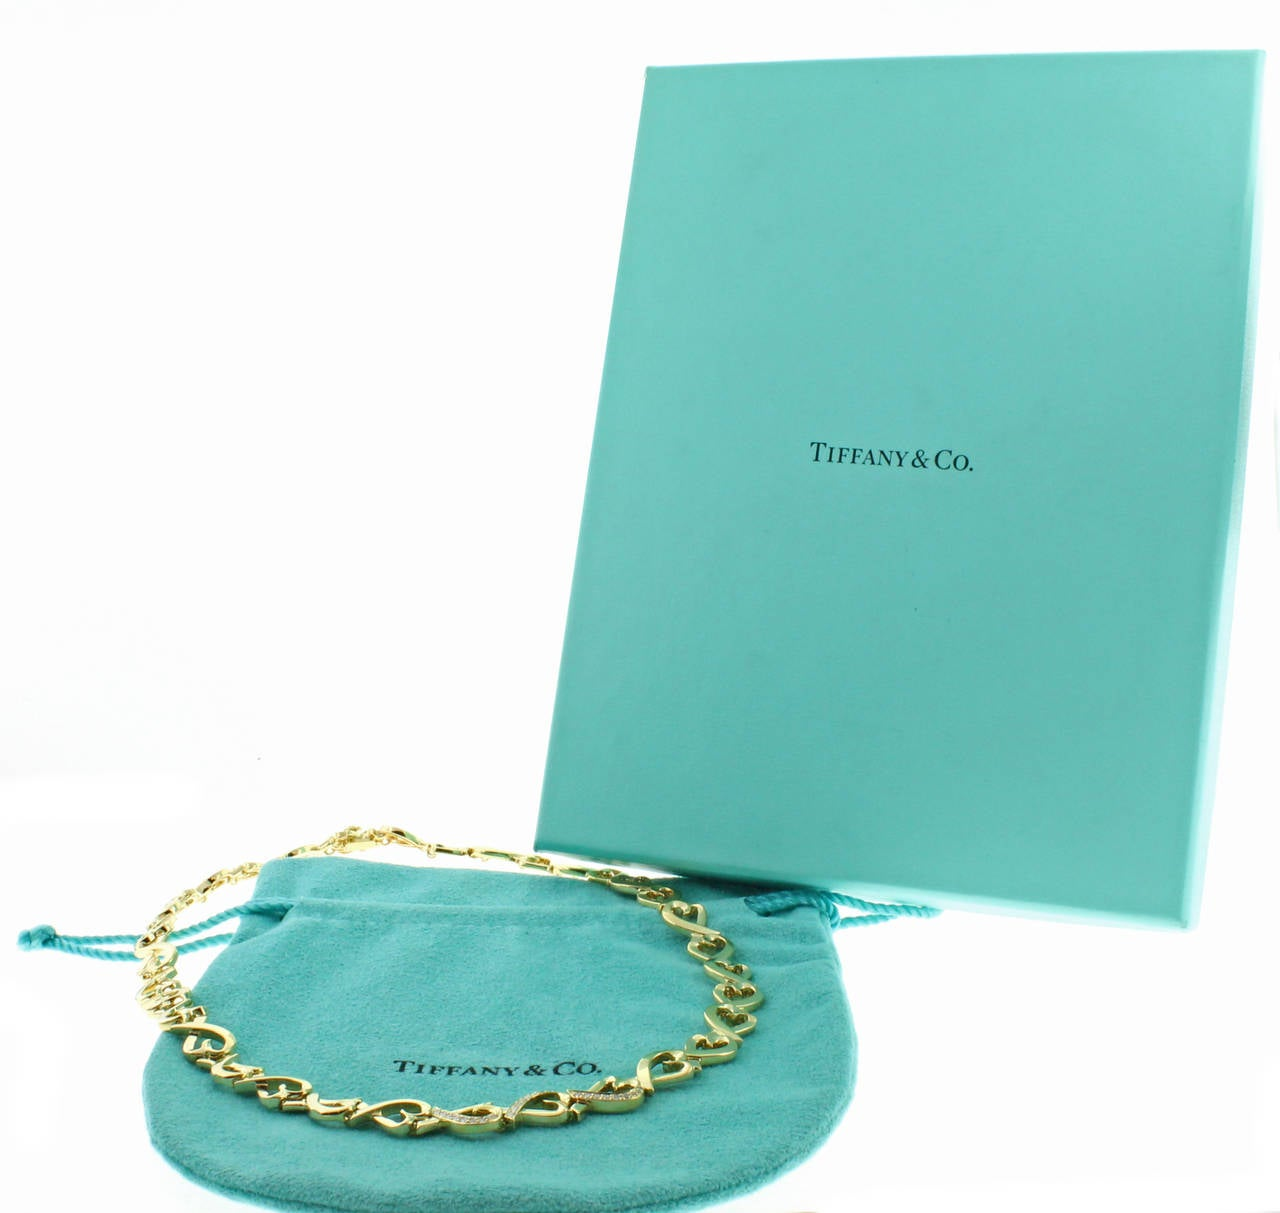 Tiffany & Co. Paloma Picasso Diamond Gold Loving Heart Necklace In Excellent Condition For Sale In Washington, DC